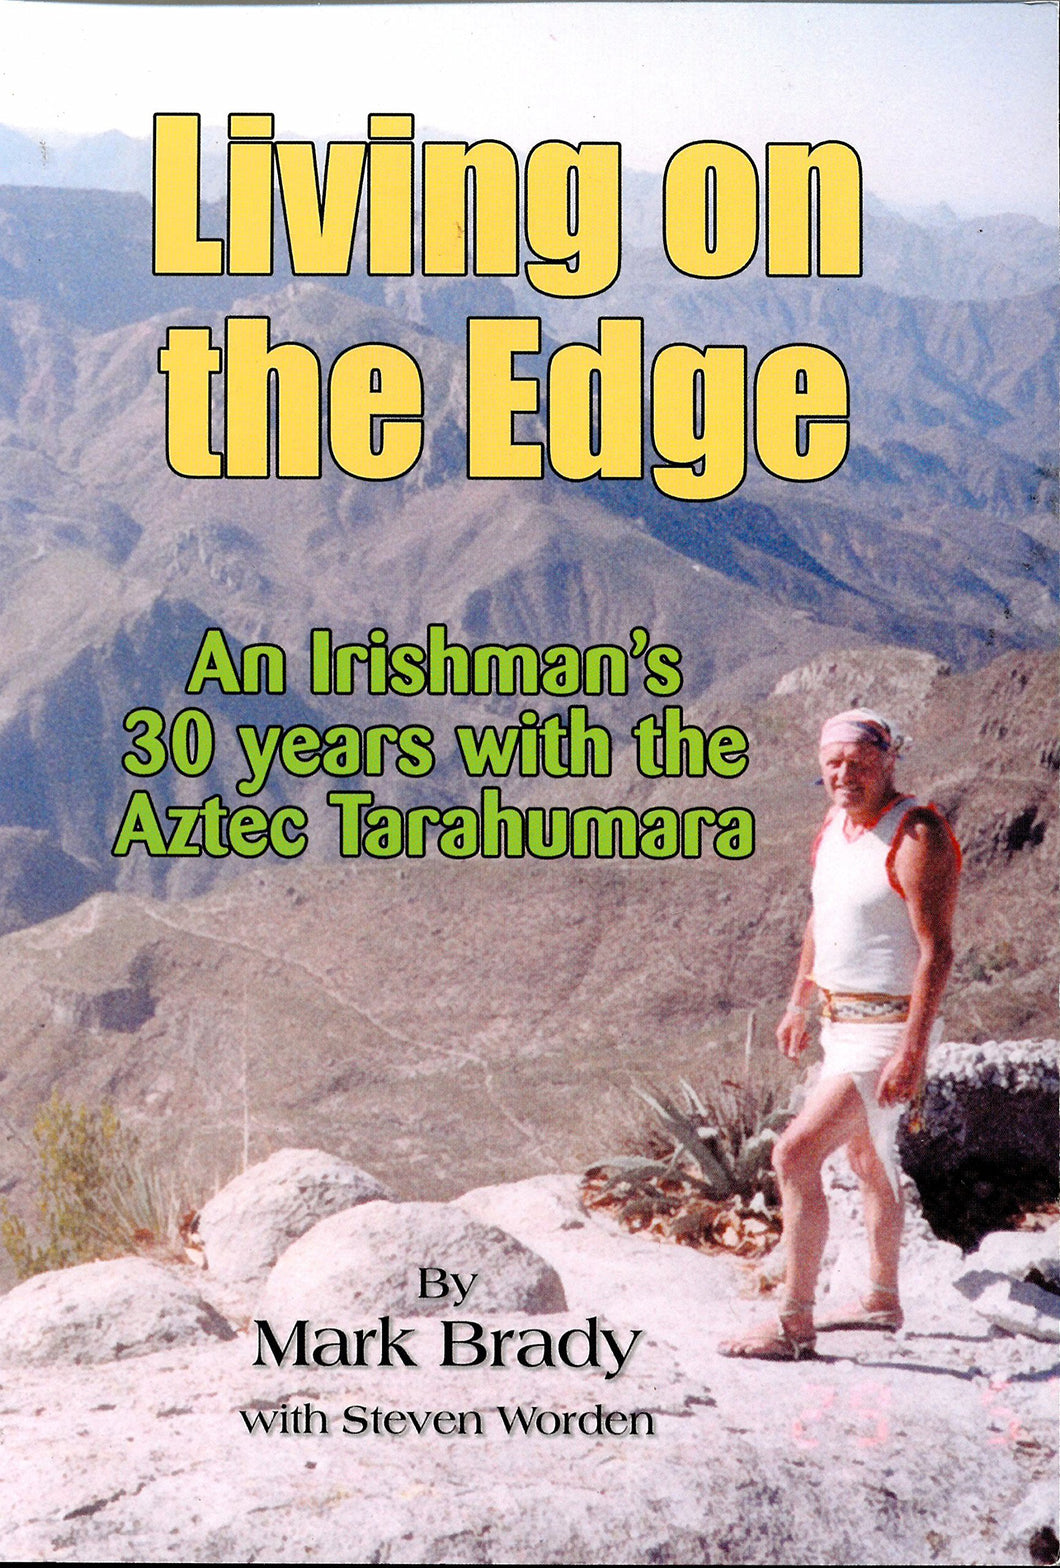 Living on the Edge: An Irishman's 30 Years with the Aztec Tarahumara